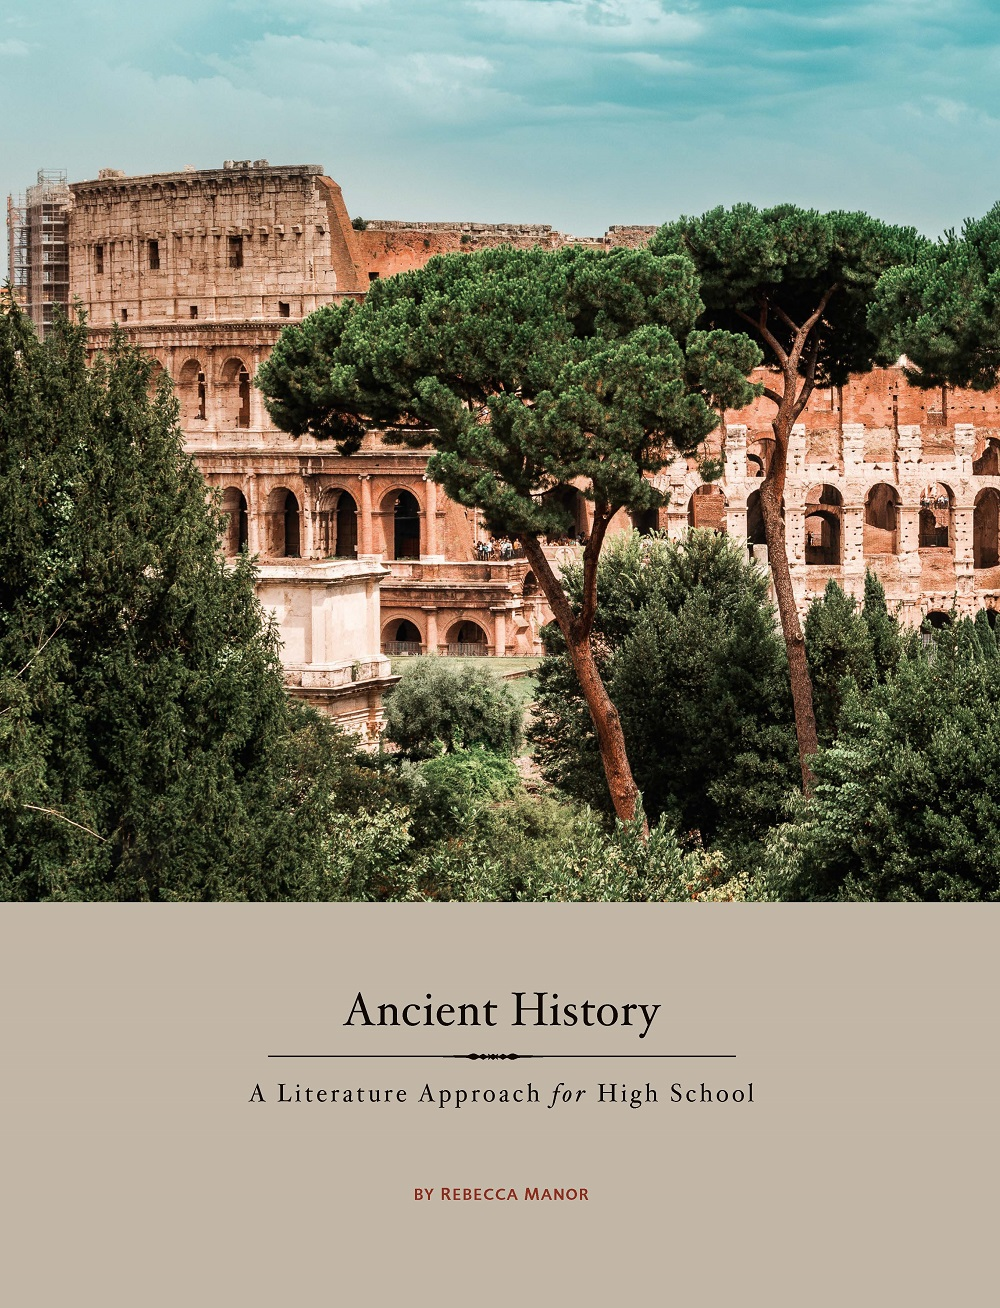 Ancient History for high school by Rebecca Manor - Beautiful Feet Books.jpg